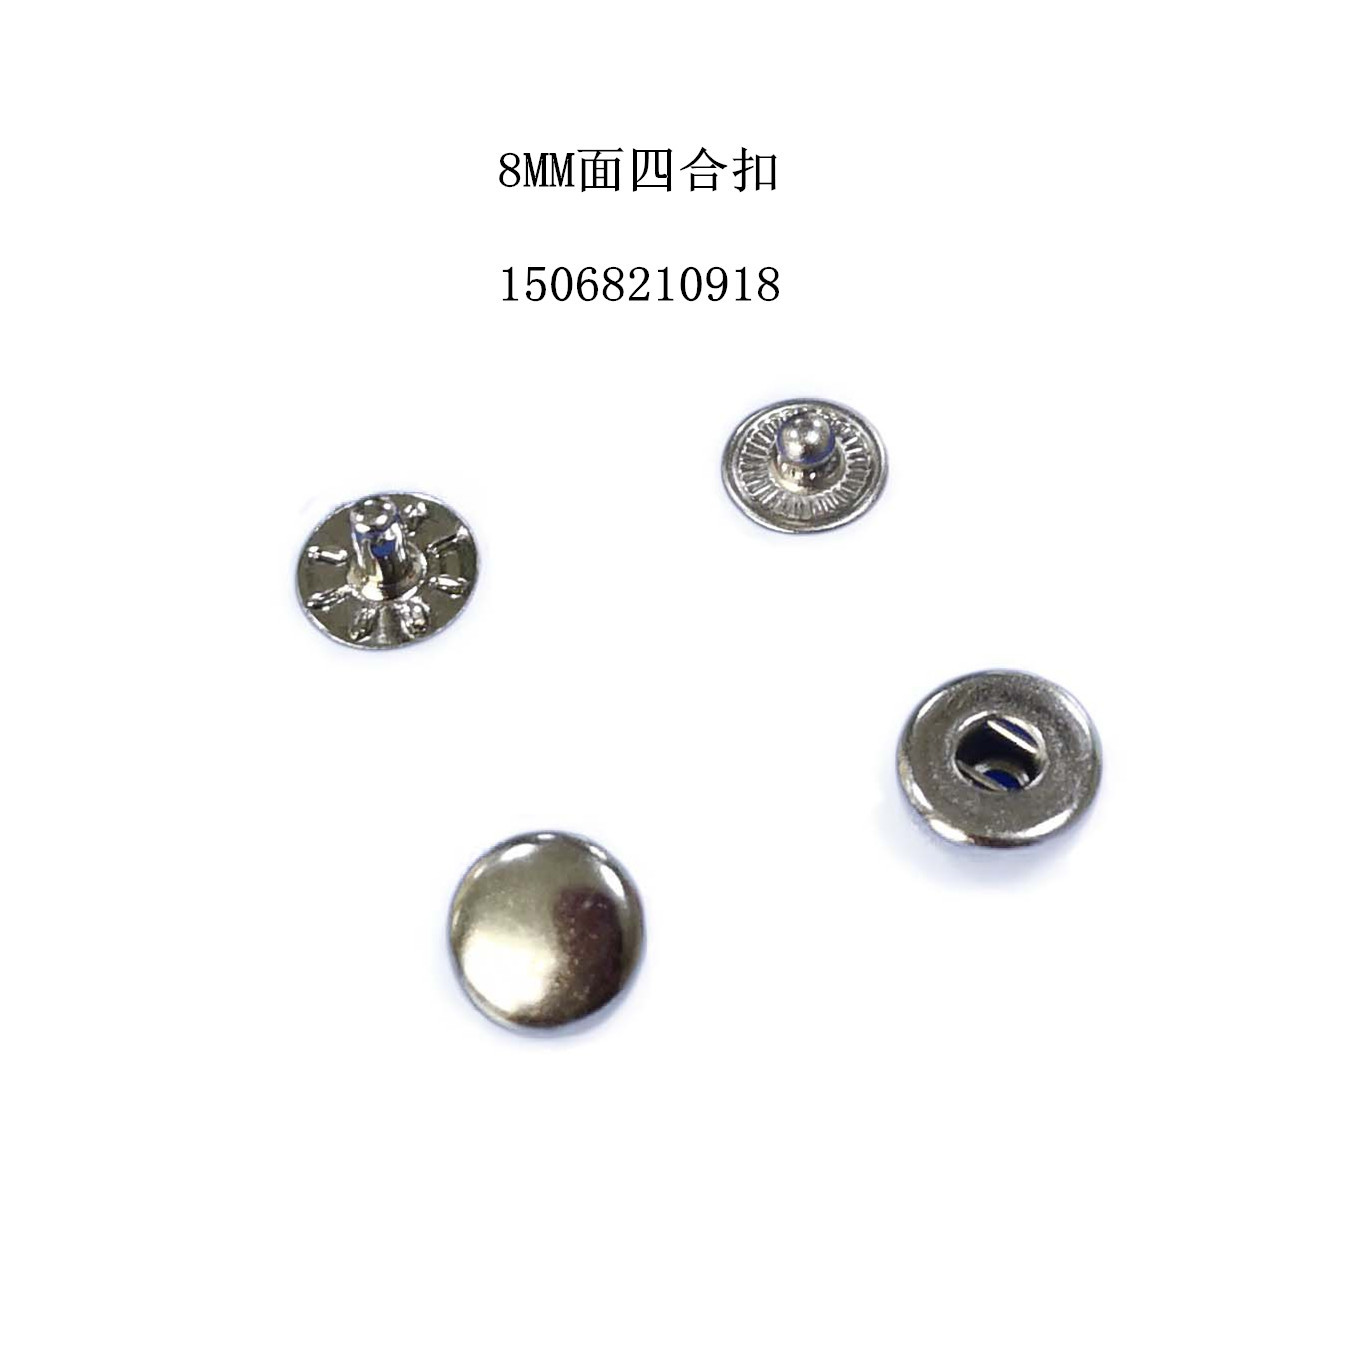 Extra Small 8MM Snap Fastener Accept Customized Color 8MM Snap Buttons Childrenswear Wallet For Snap Closure 4 Pieces In A Set